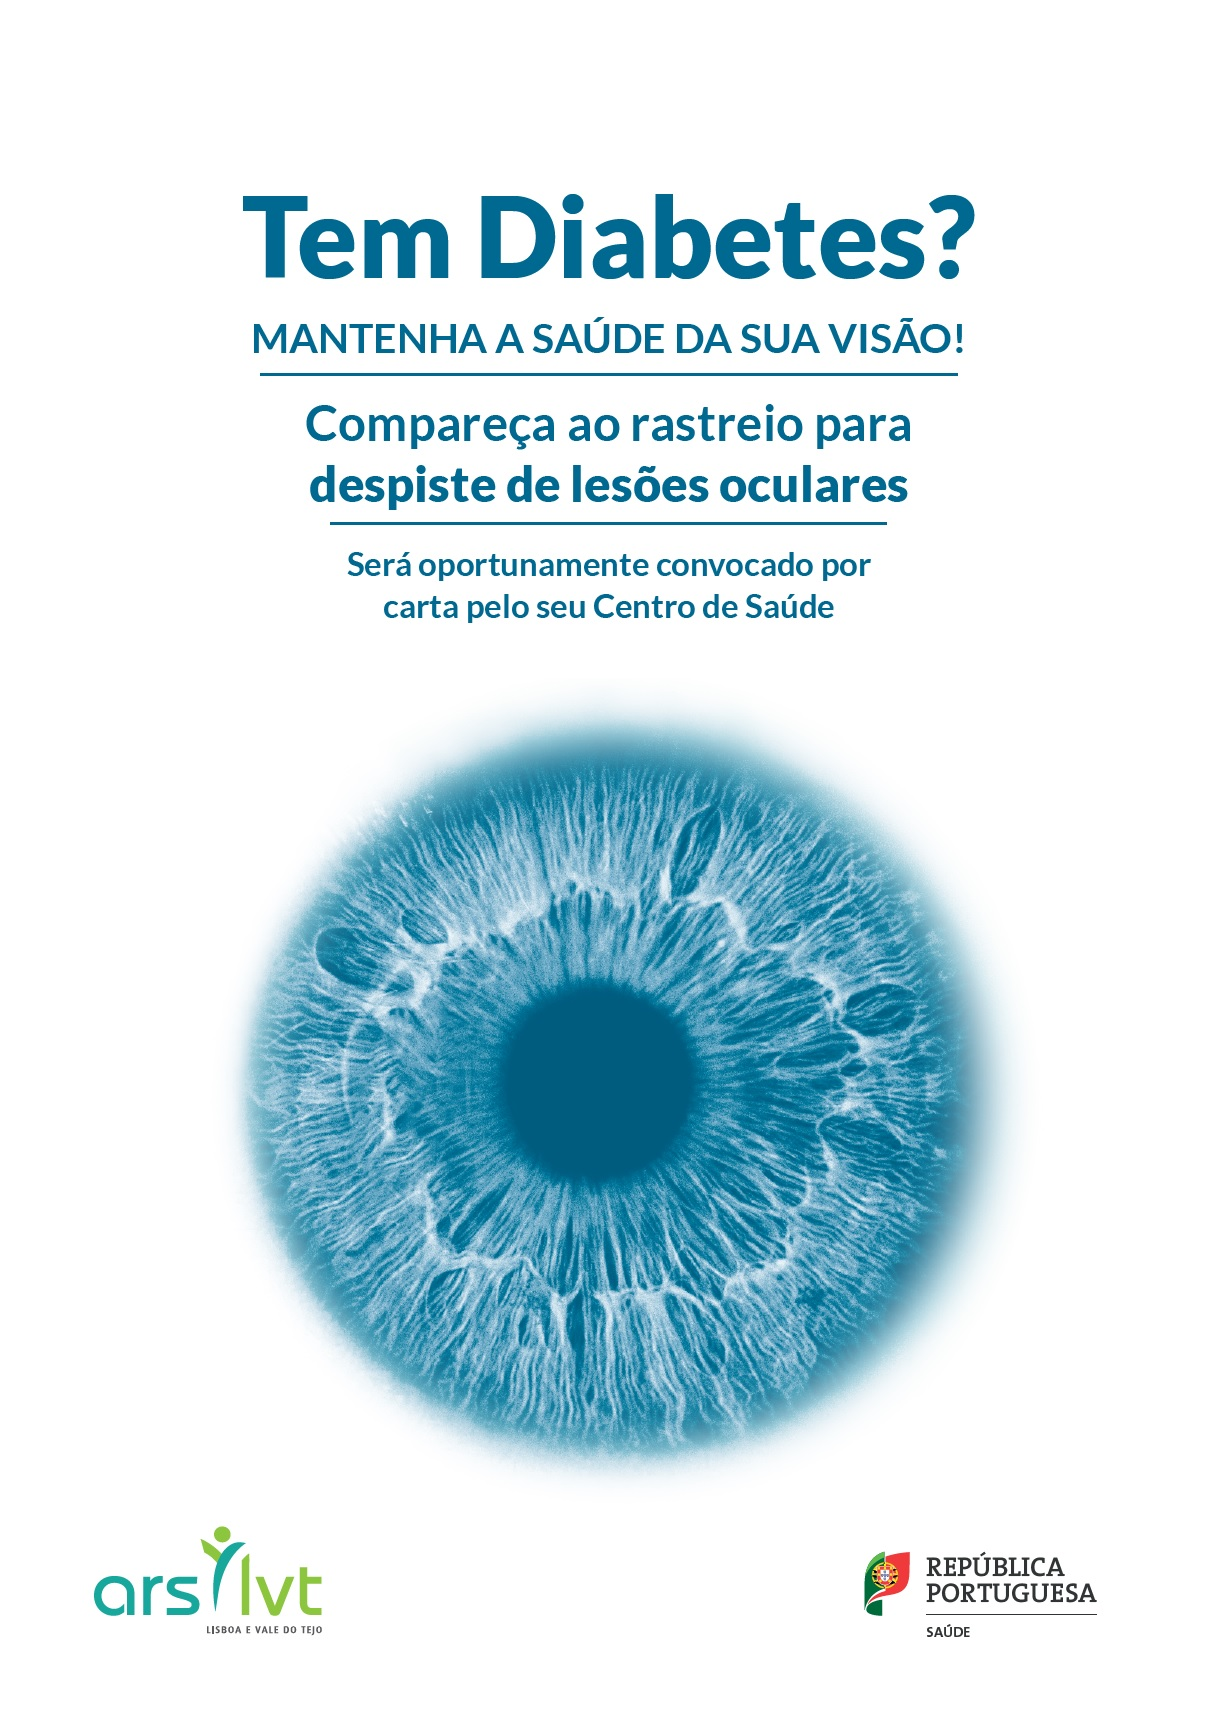 Diabetes retinopatia 2018